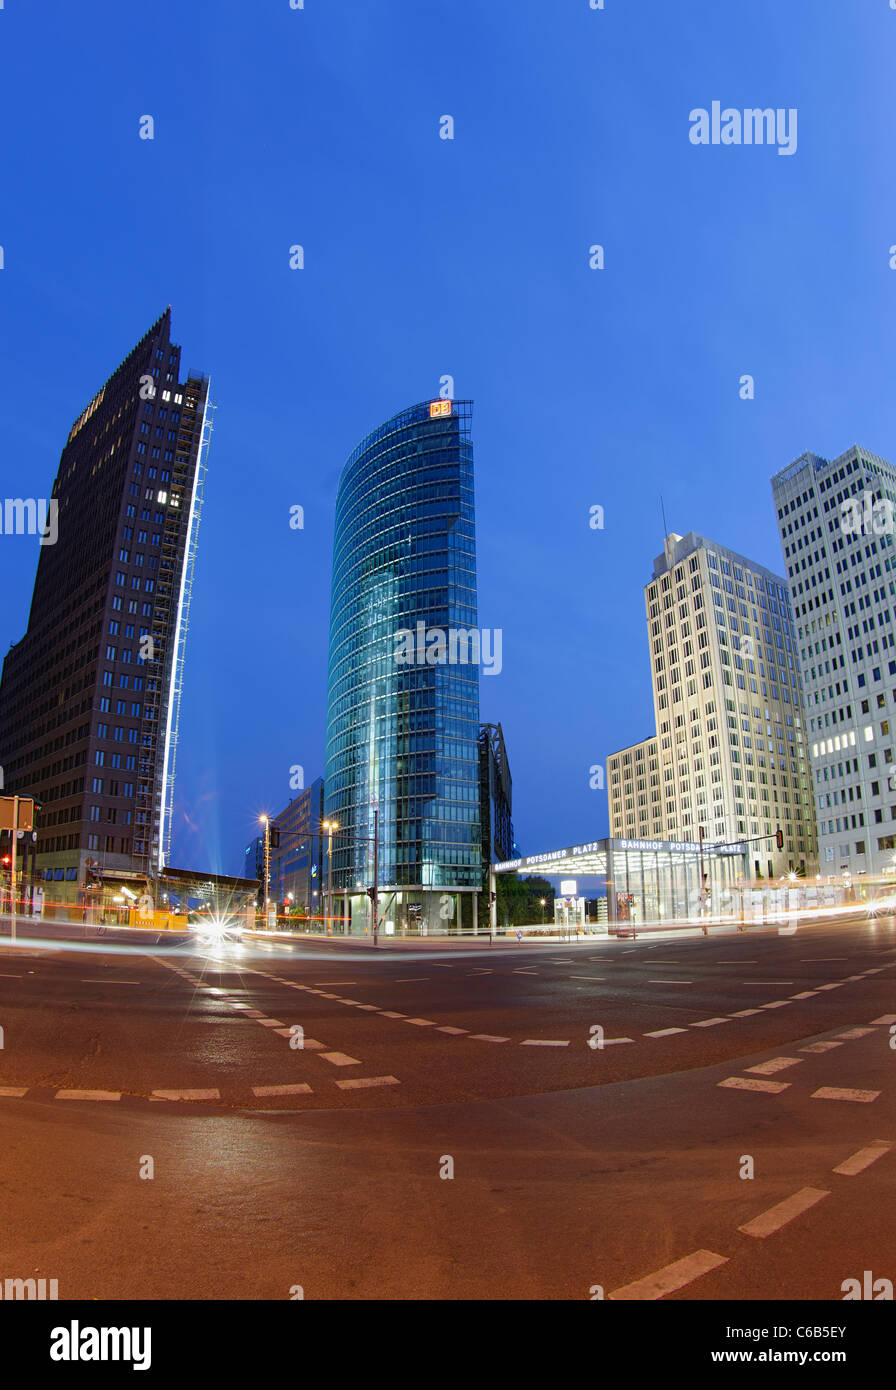 Potsdamer Platz square, in the early morning twilight, Mitte district, Berlin, Germany, Europe - Stock Image